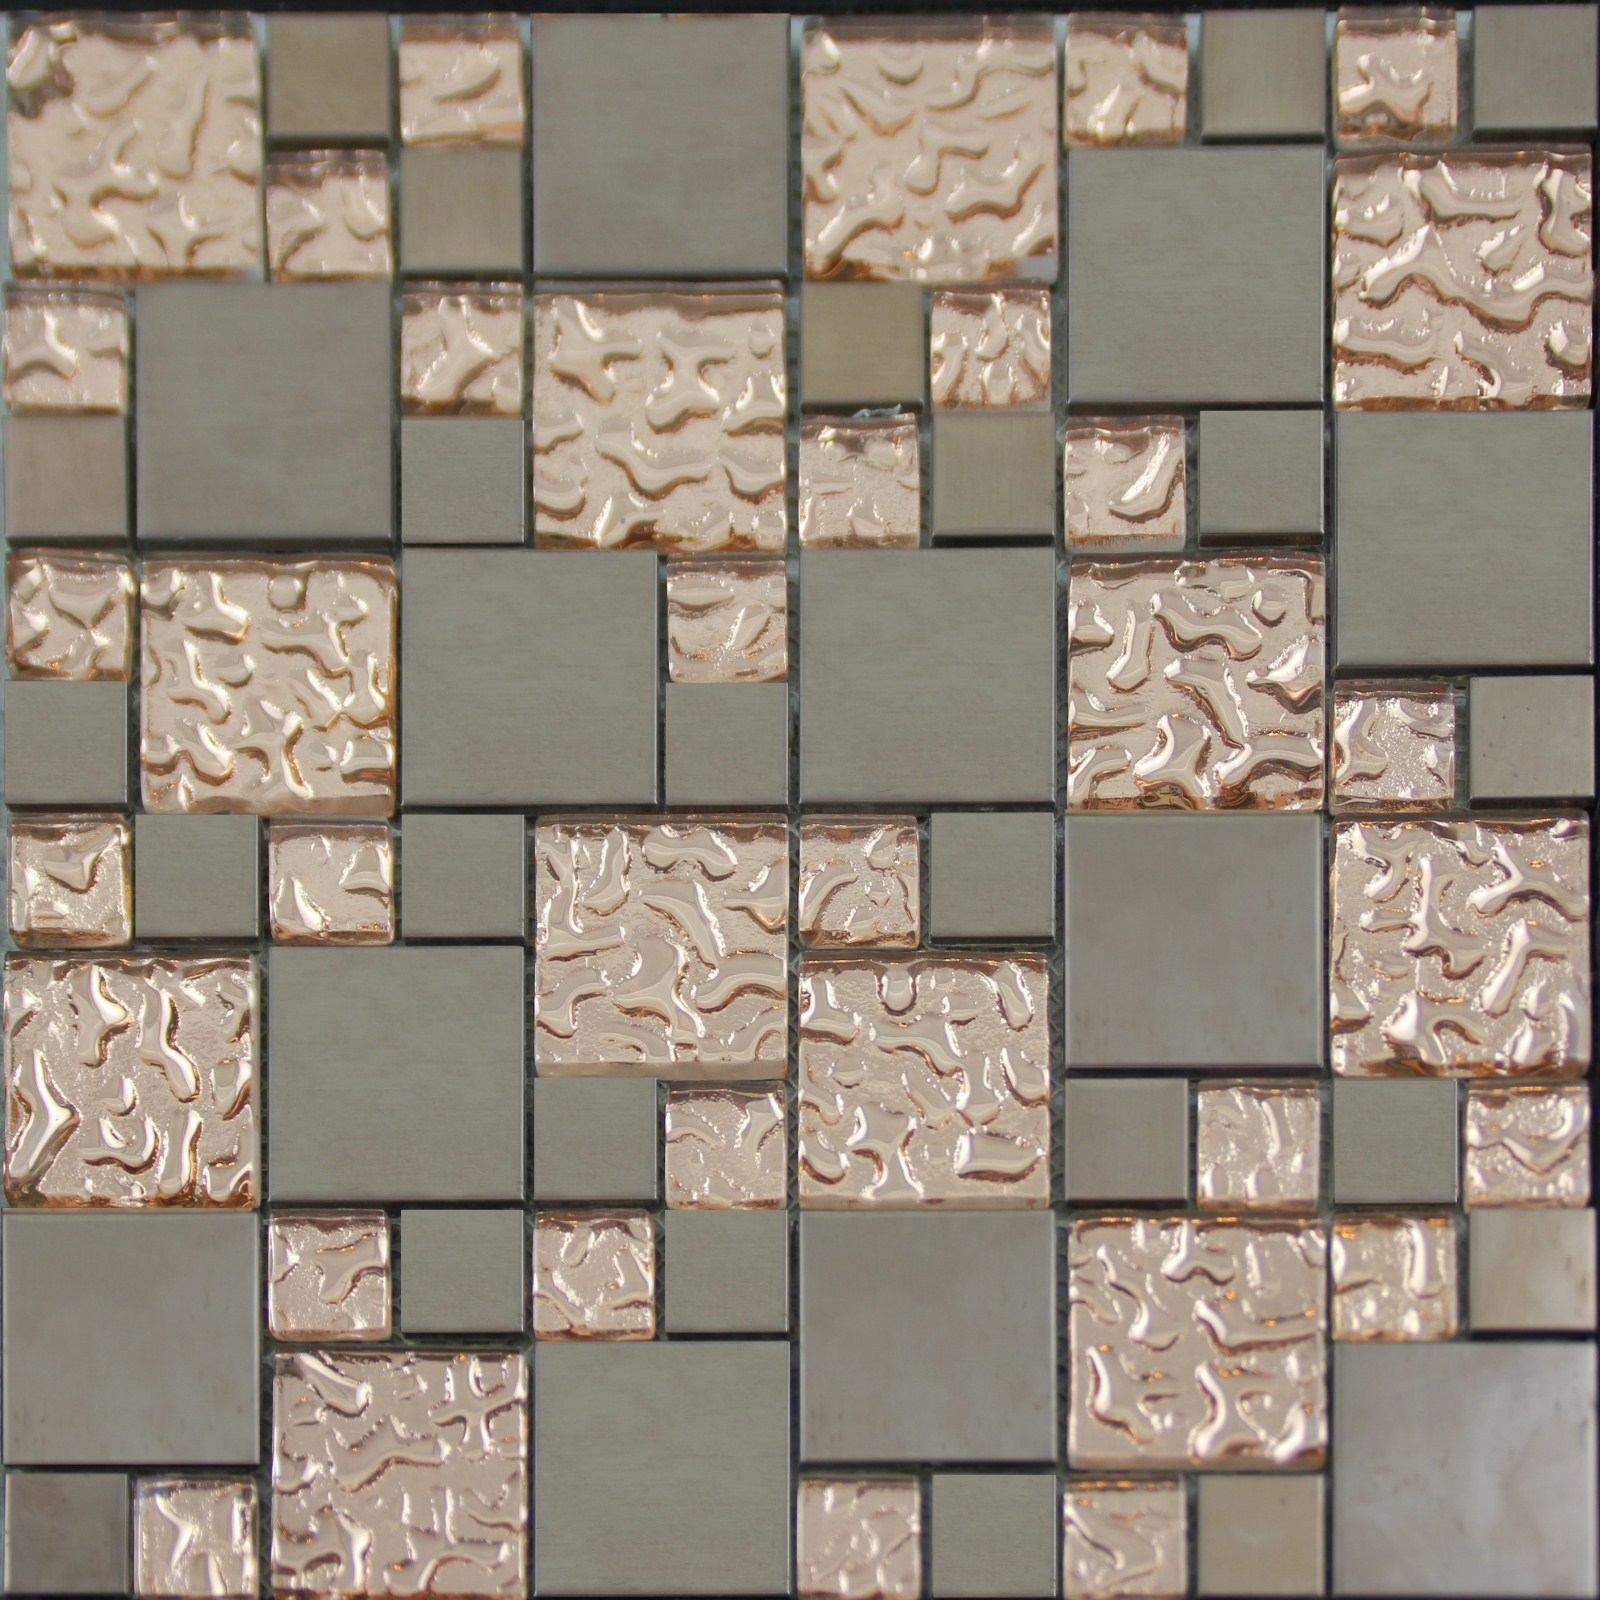 tile designs plated ceramic wall tiles wall kitchen backsplash gft015